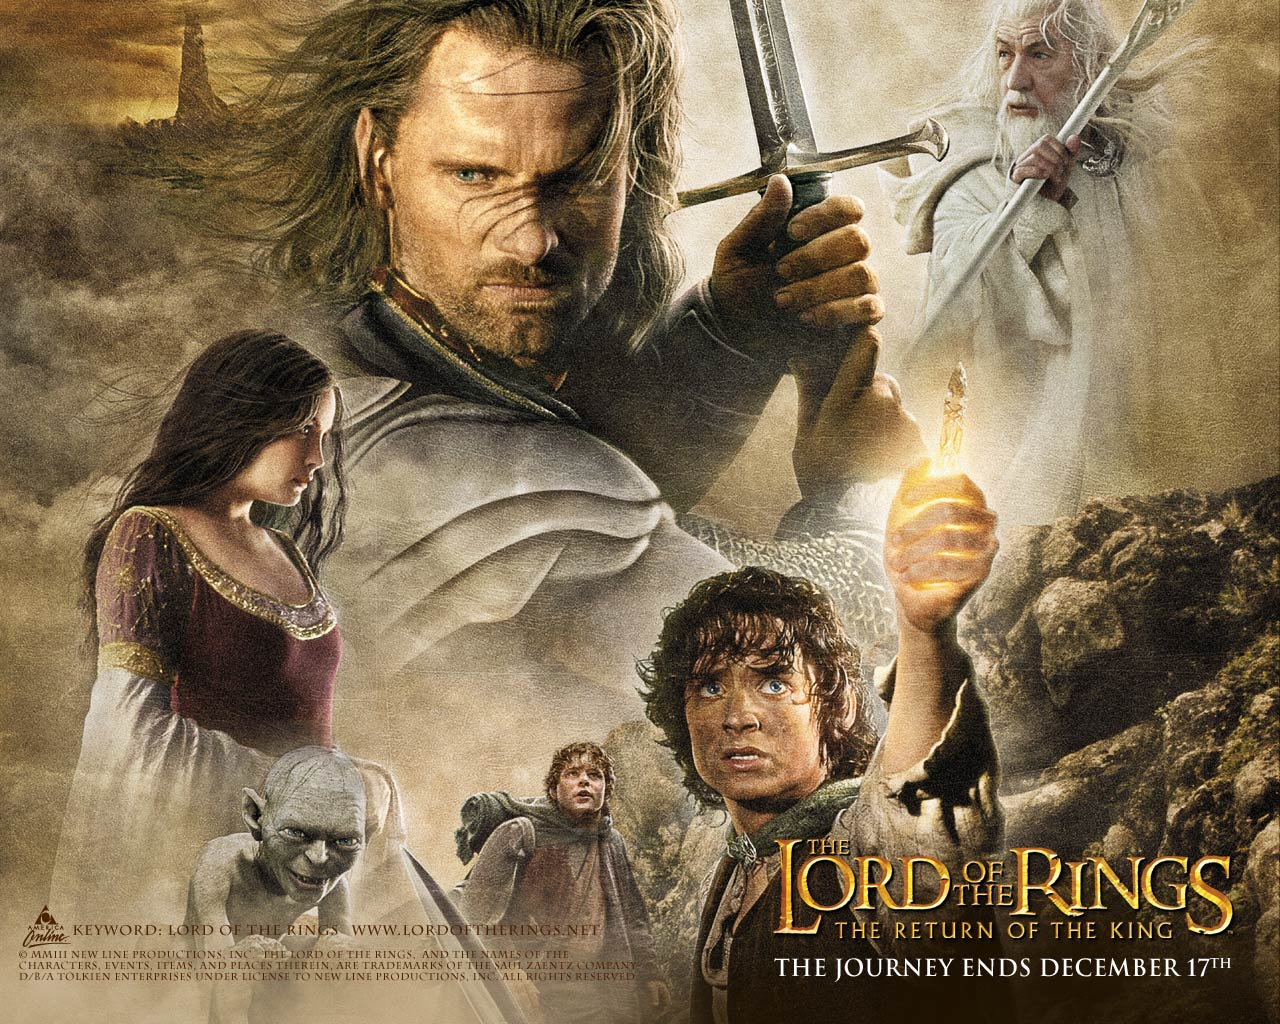 http://2.bp.blogspot.com/_XZUU-MtD9HM/TFCX_-Ew8-I/AAAAAAAAALo/wHt2V0KN6xM/s1600/The_Lord_Of_The_Rings_-_The_Return_Of_The_King,_2003.jpg